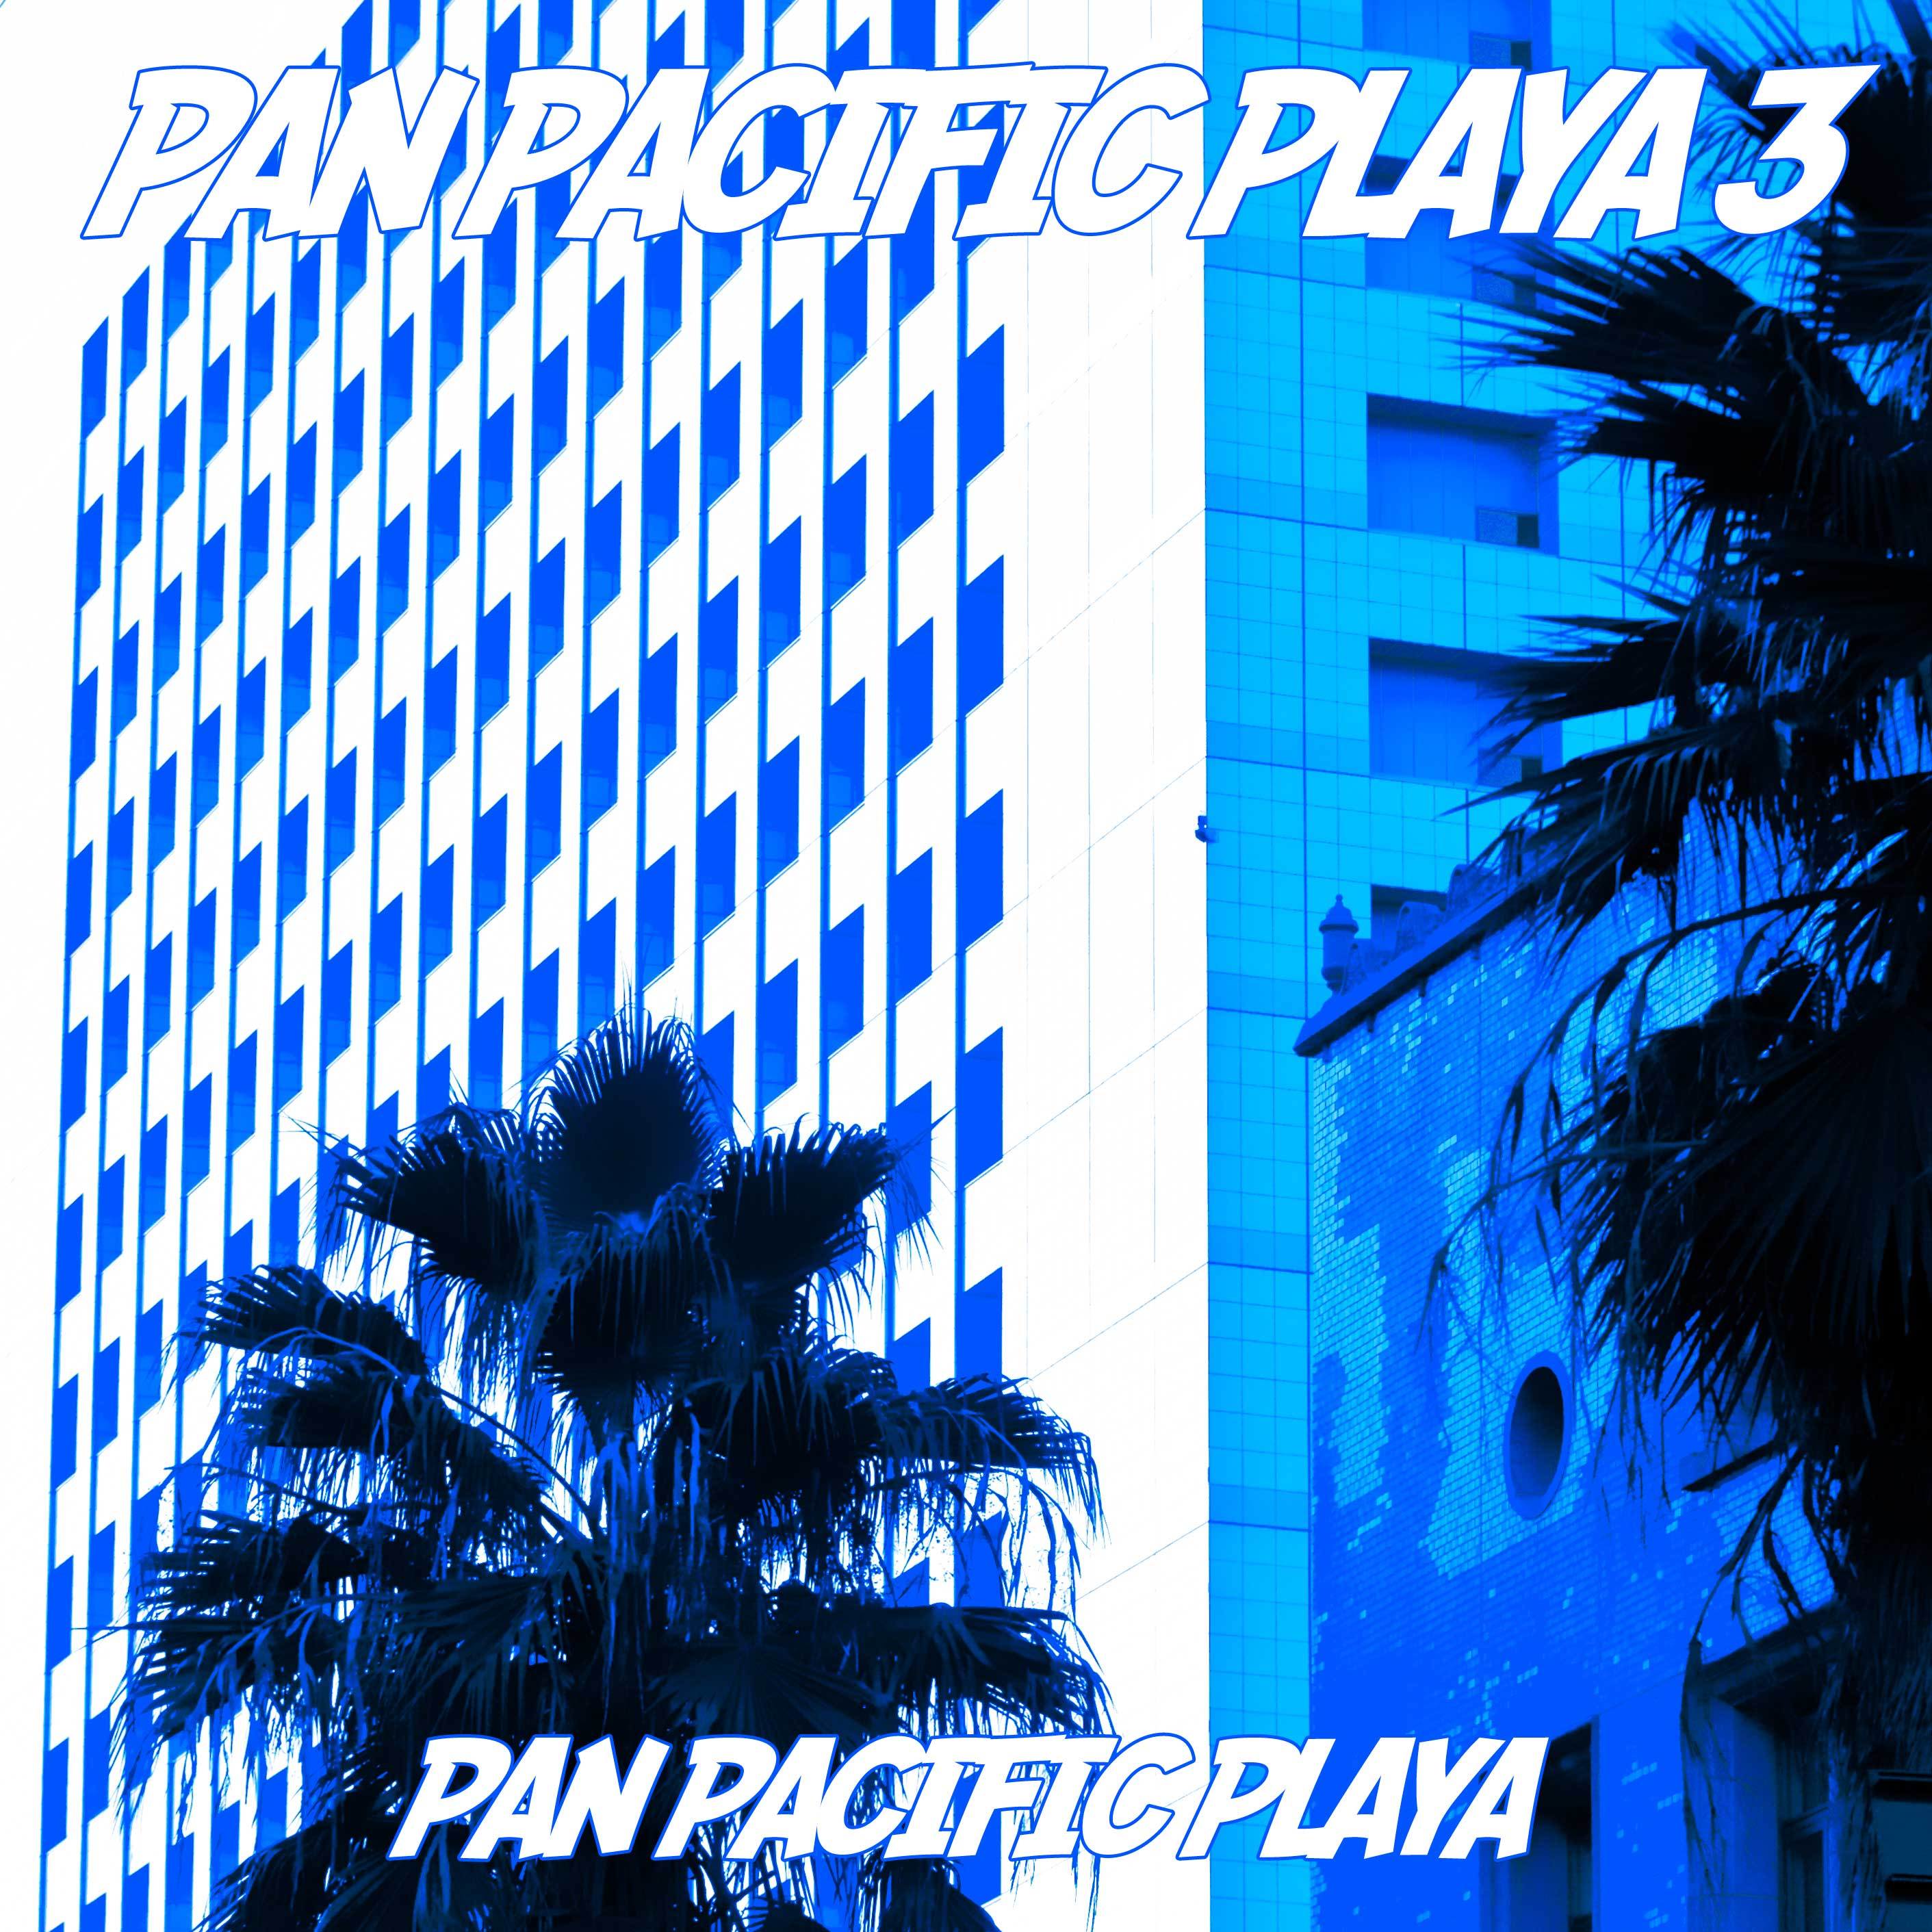 PAN PACIFIC PLAYA / PAN PACIFIC PLAYA 3 (PPP-027) (FREE DOWNLOAD)